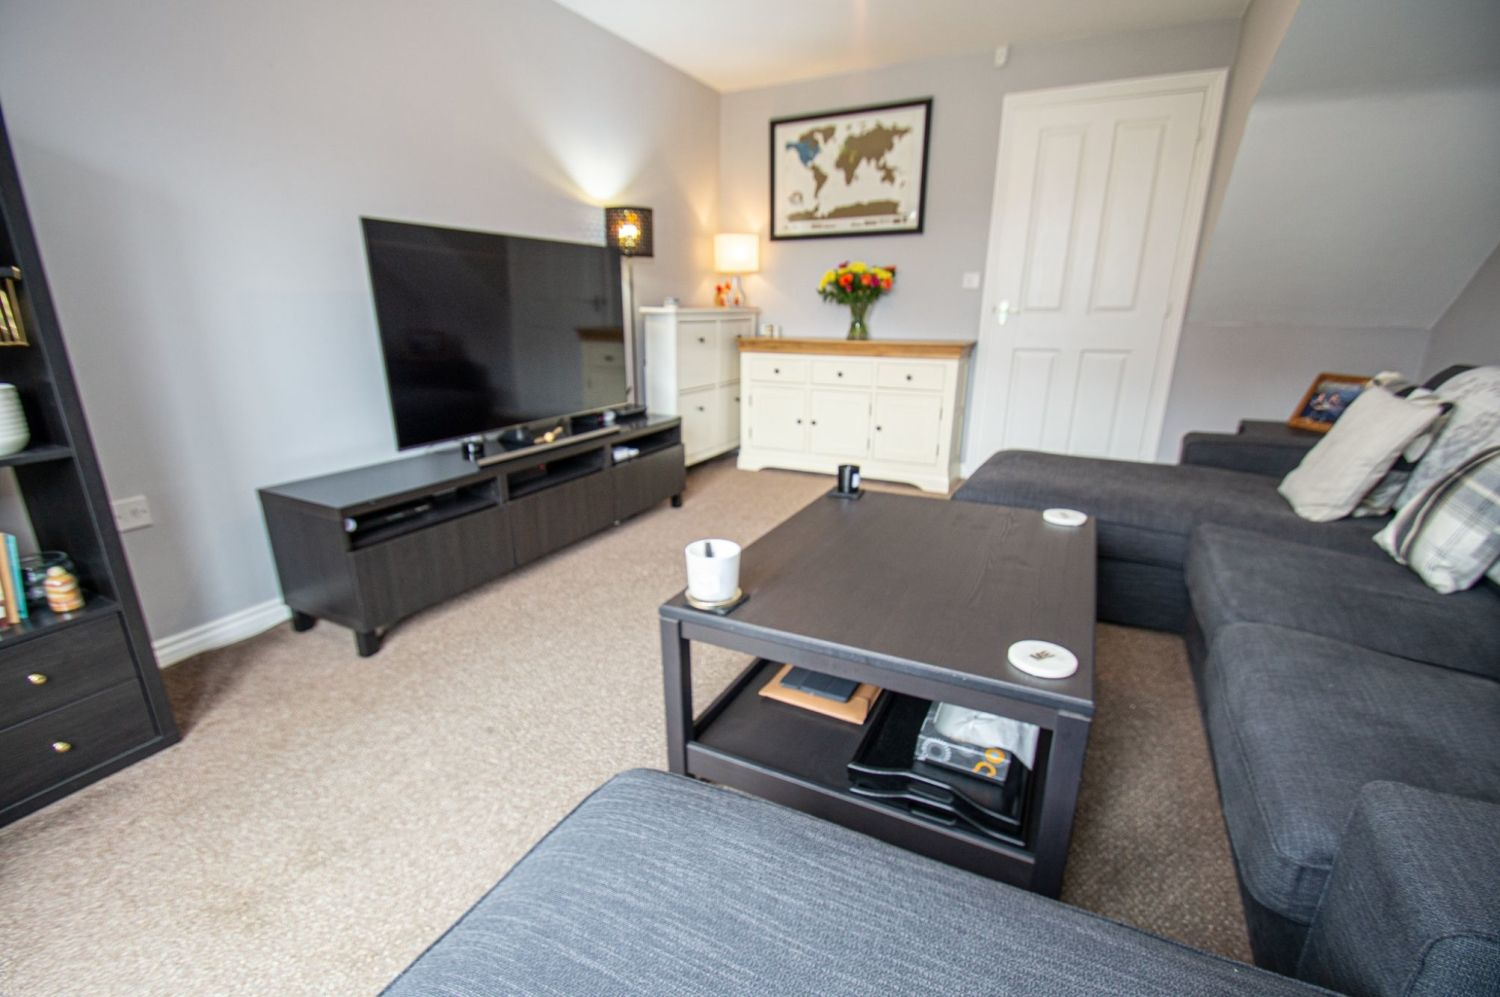 2 bed semi-detached for sale in Bobeche Place, Kingswinford 3